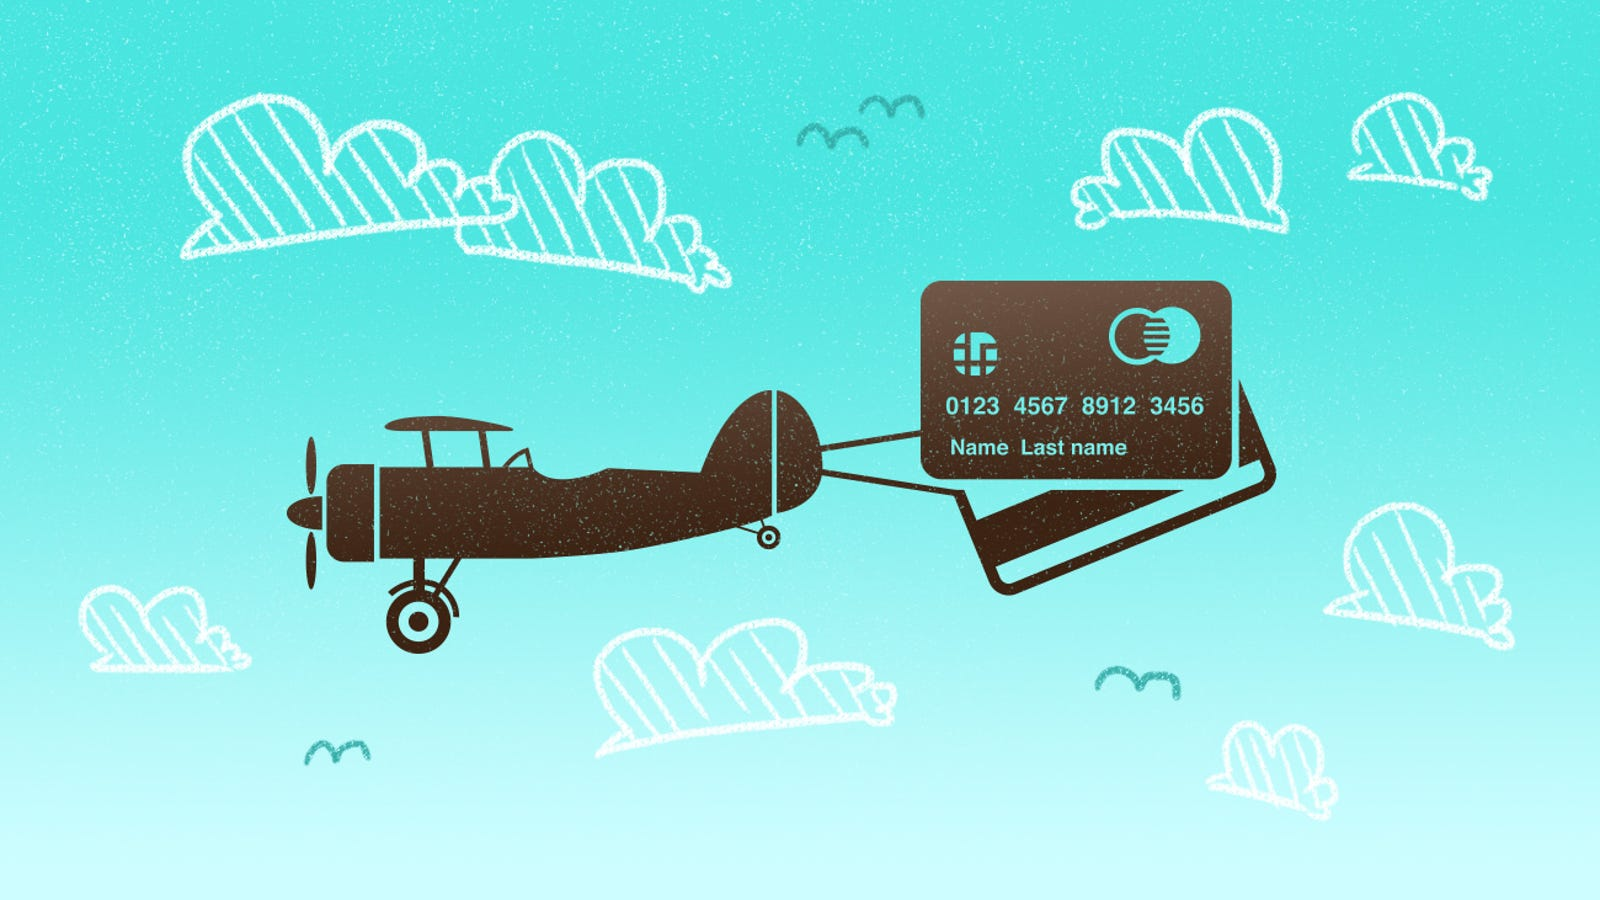 The Credit Cards That Give You Free Or Cheap Companion Plane Tickets